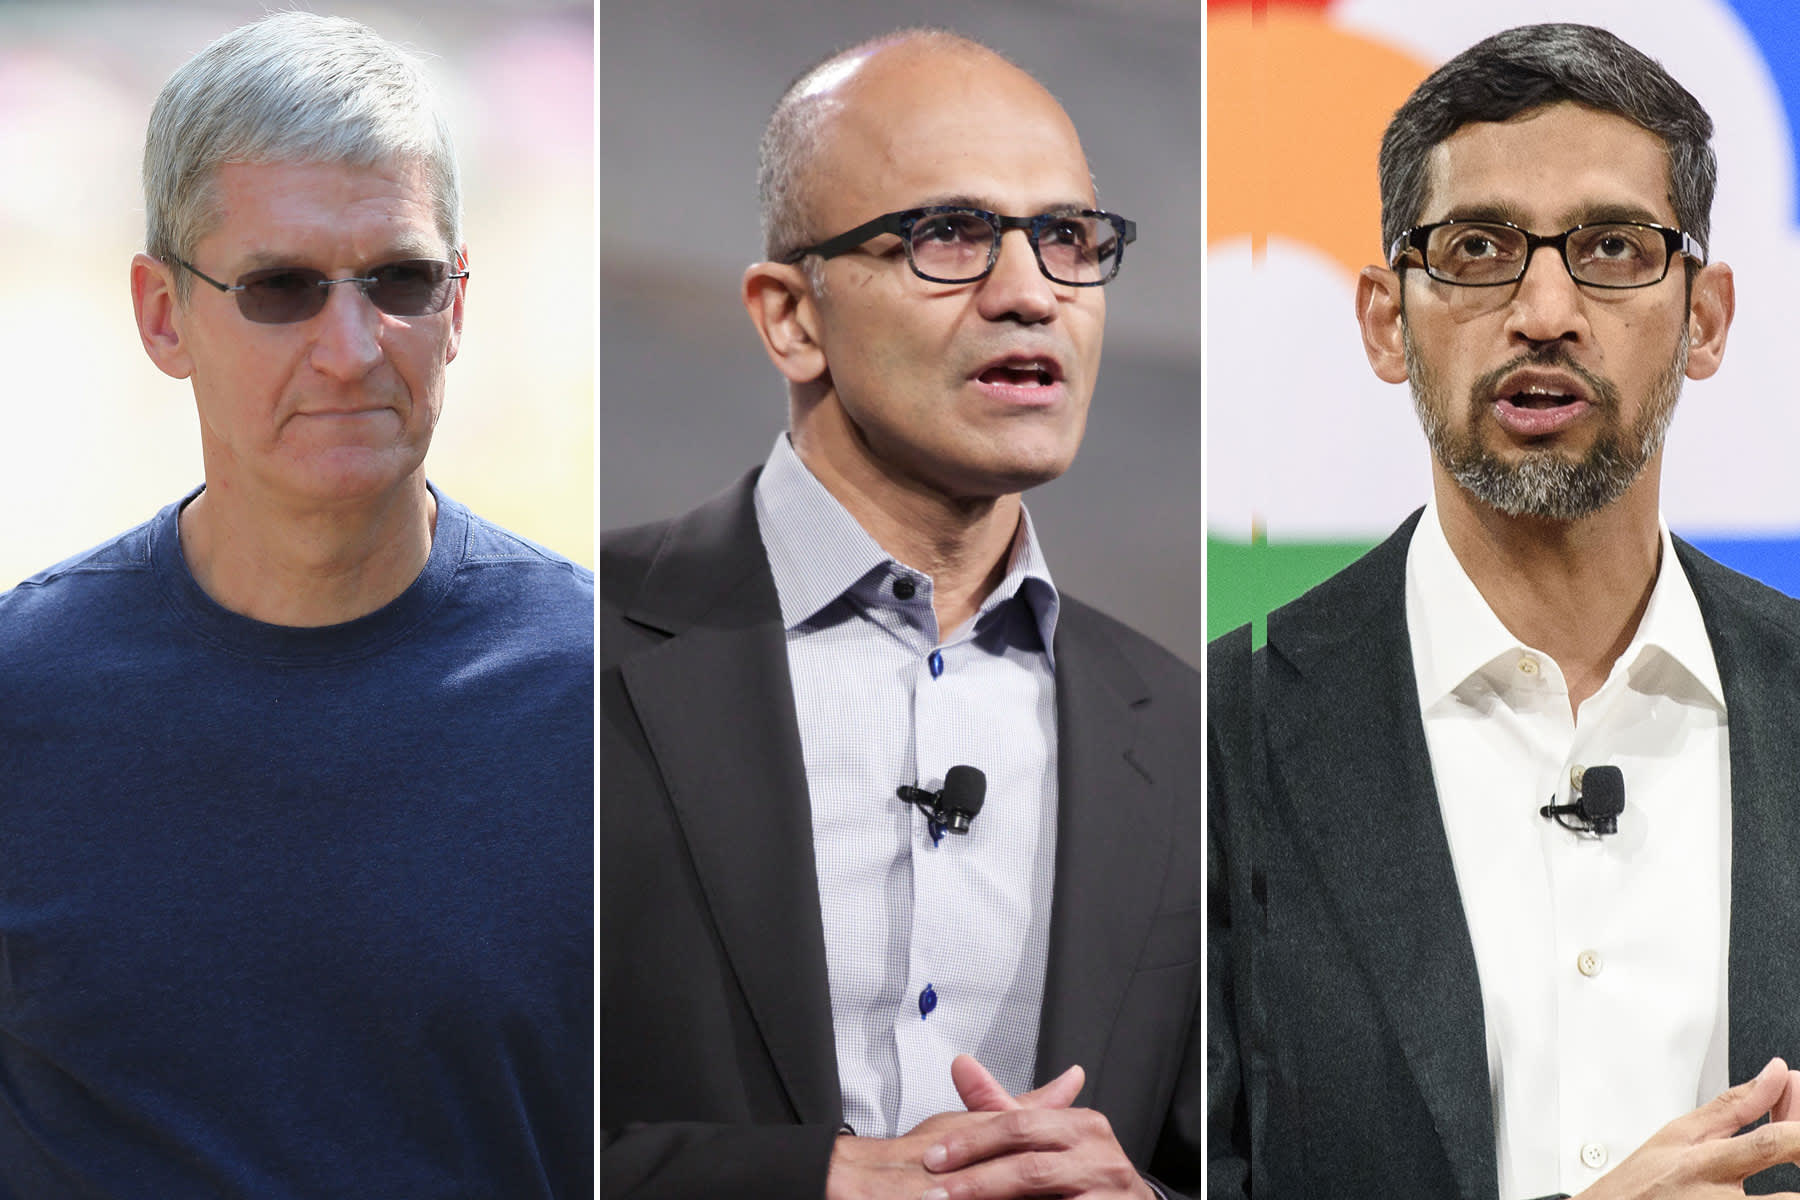 In the stock market, it's become Apple, Microsoft and Alphabet vs everyone else